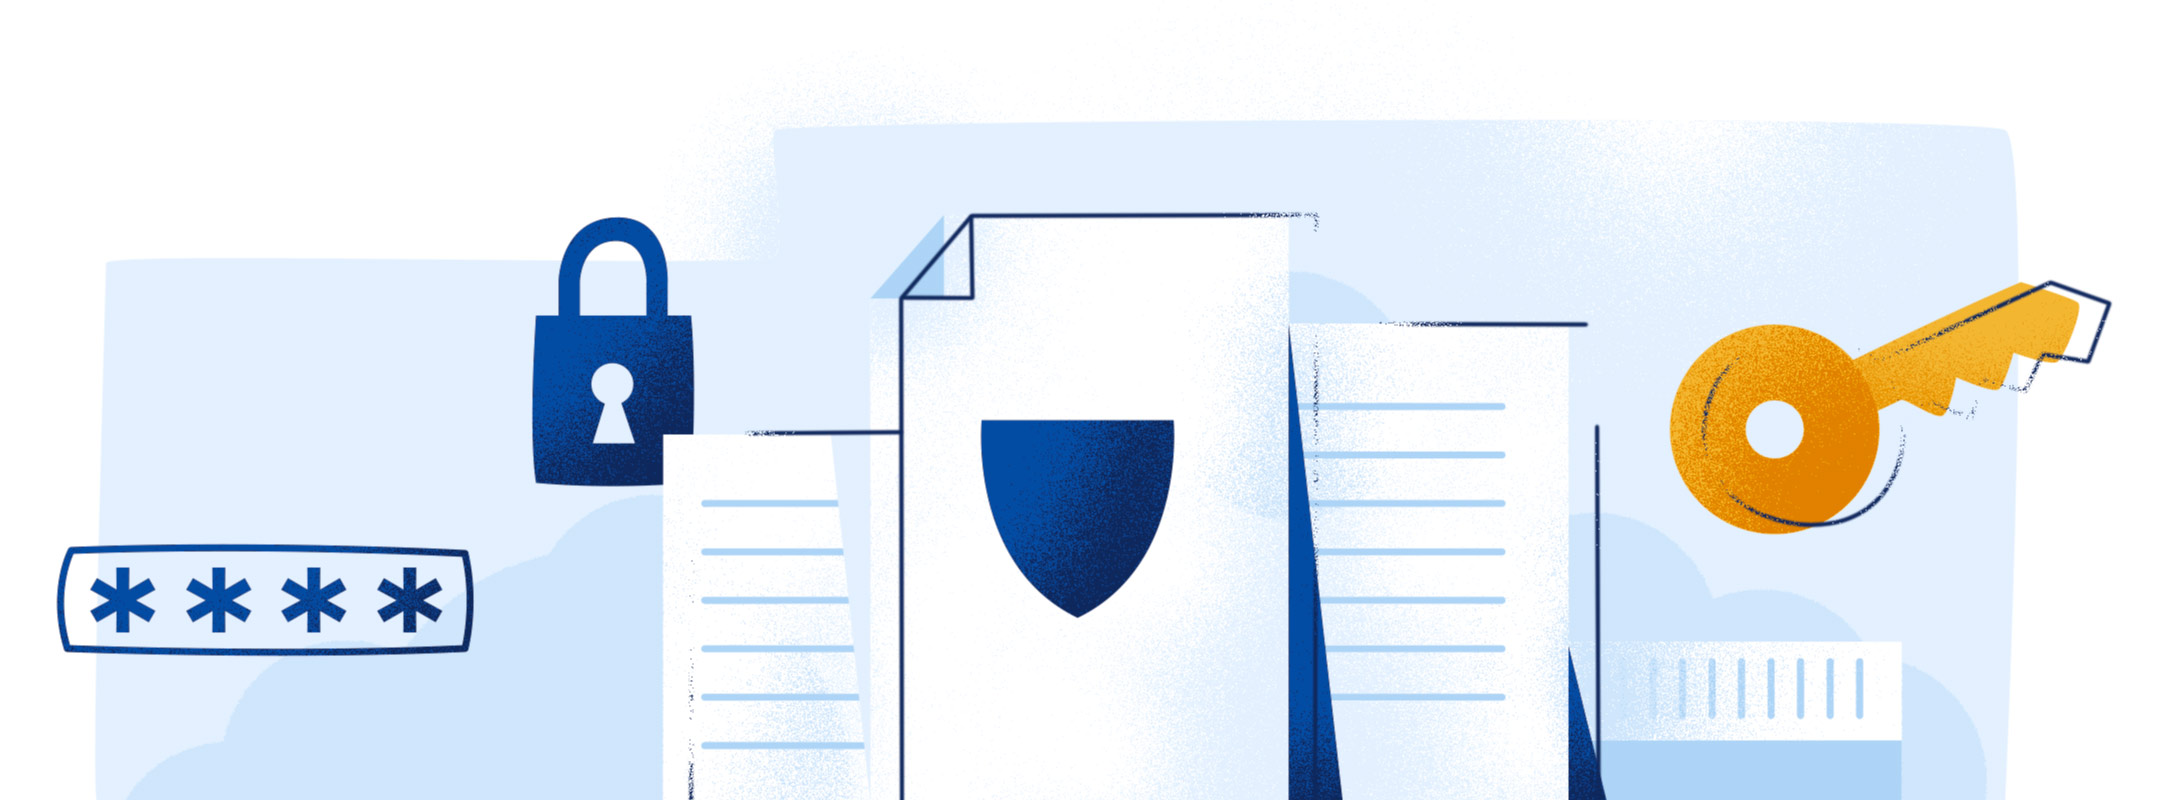 abstract imagery of papers, a lock, a key and other data breach imagery